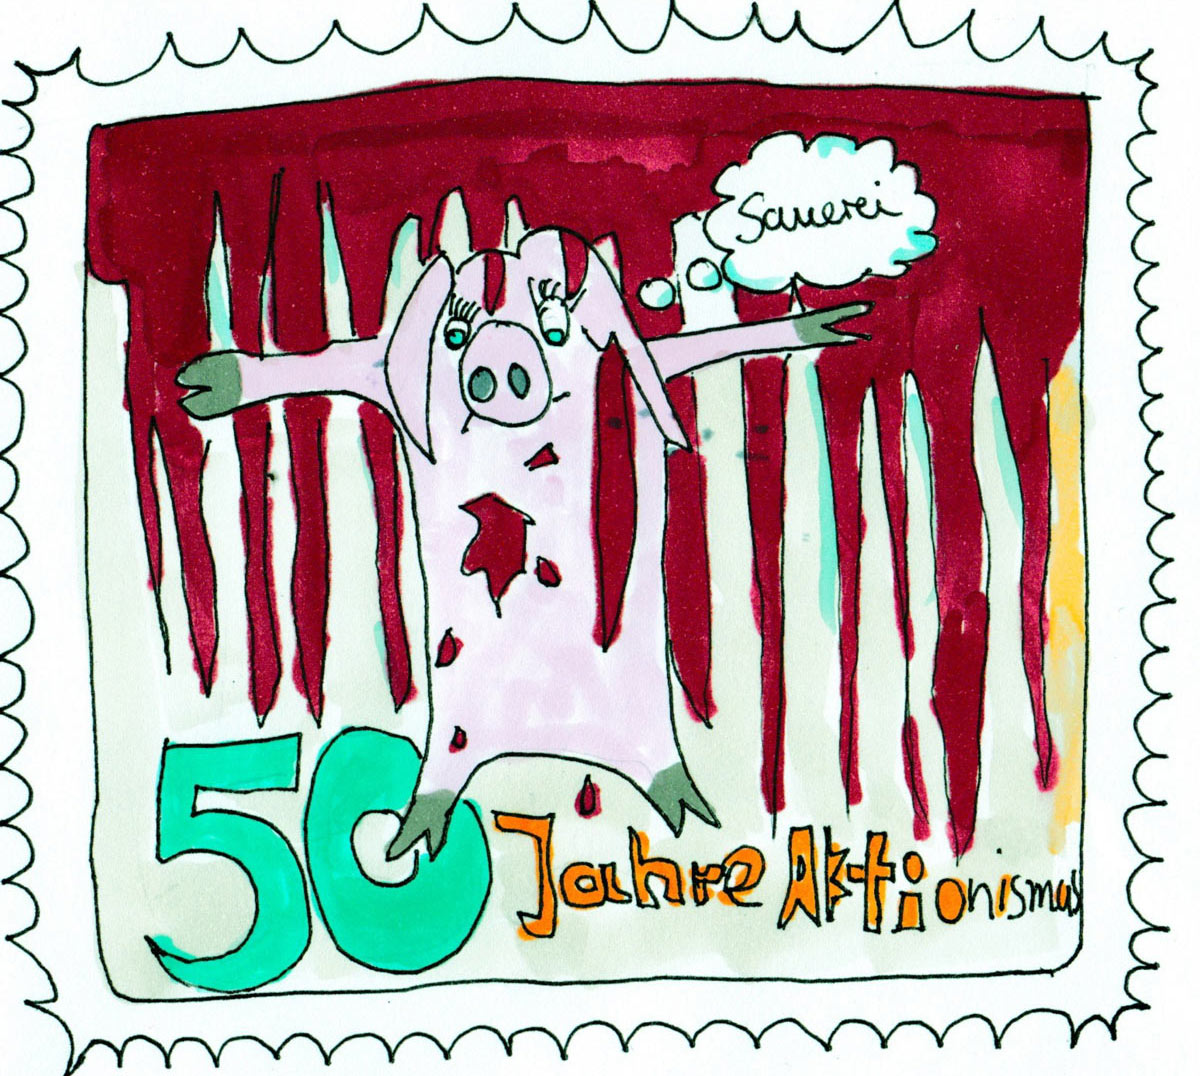 Encounters On Travel. Cosima Reif, 50 Jahre Aktionismus, 50 years of (Viennese) Actionism, stamp from the Austrian Pure Chance Postal Service, 2018